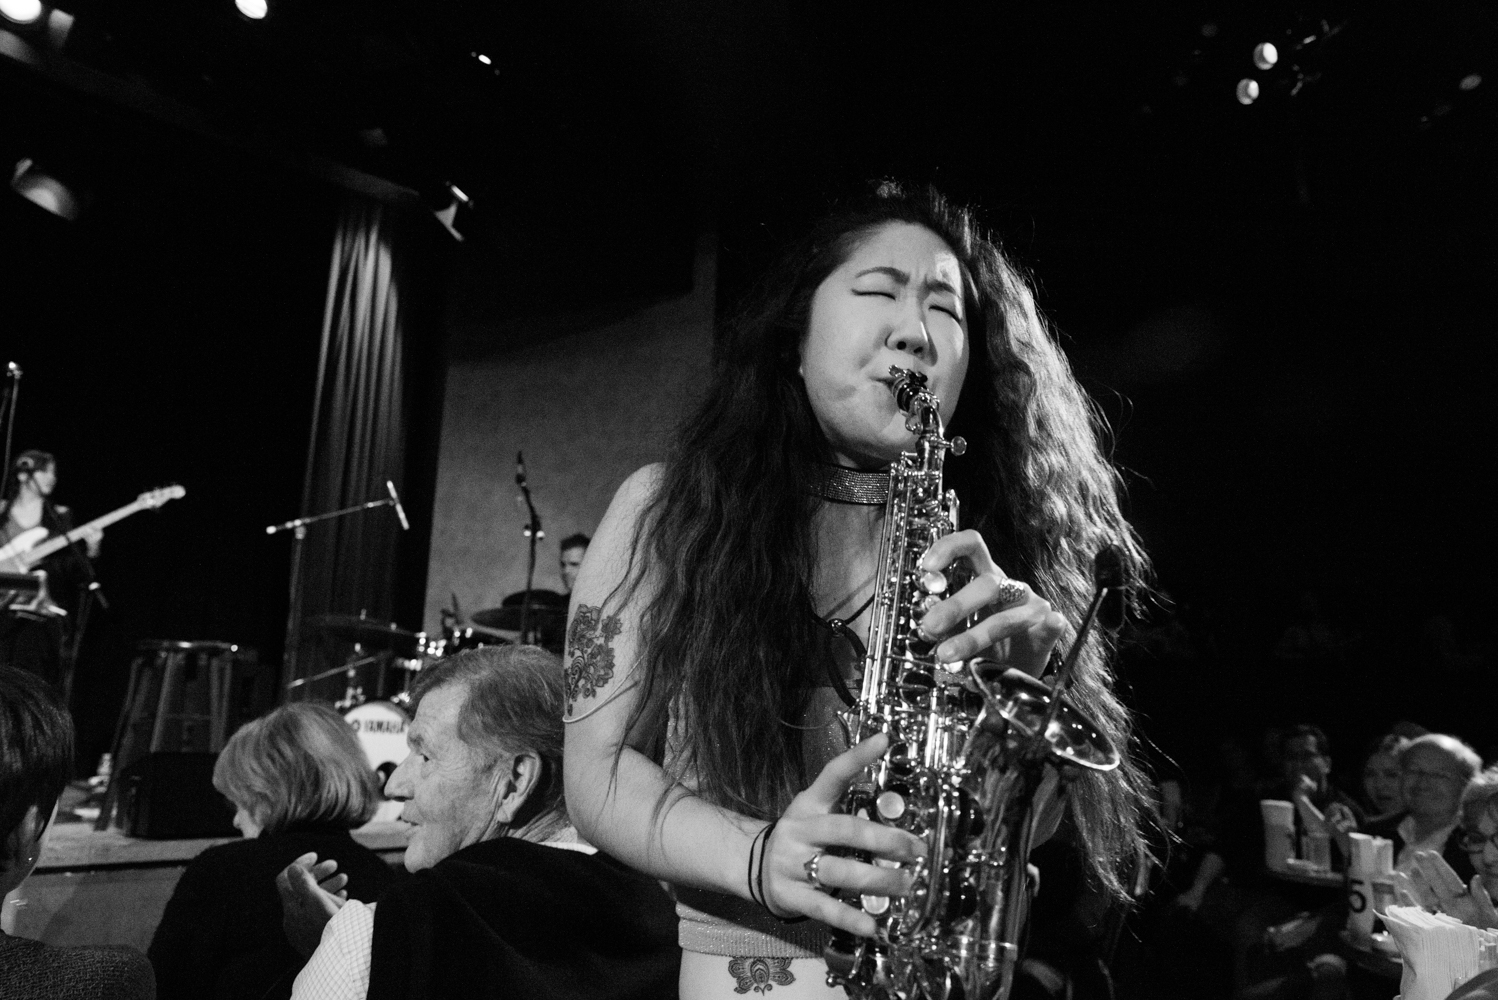 saxophone-player-oakland-yoshis-grace-kelly-music-show.jpg